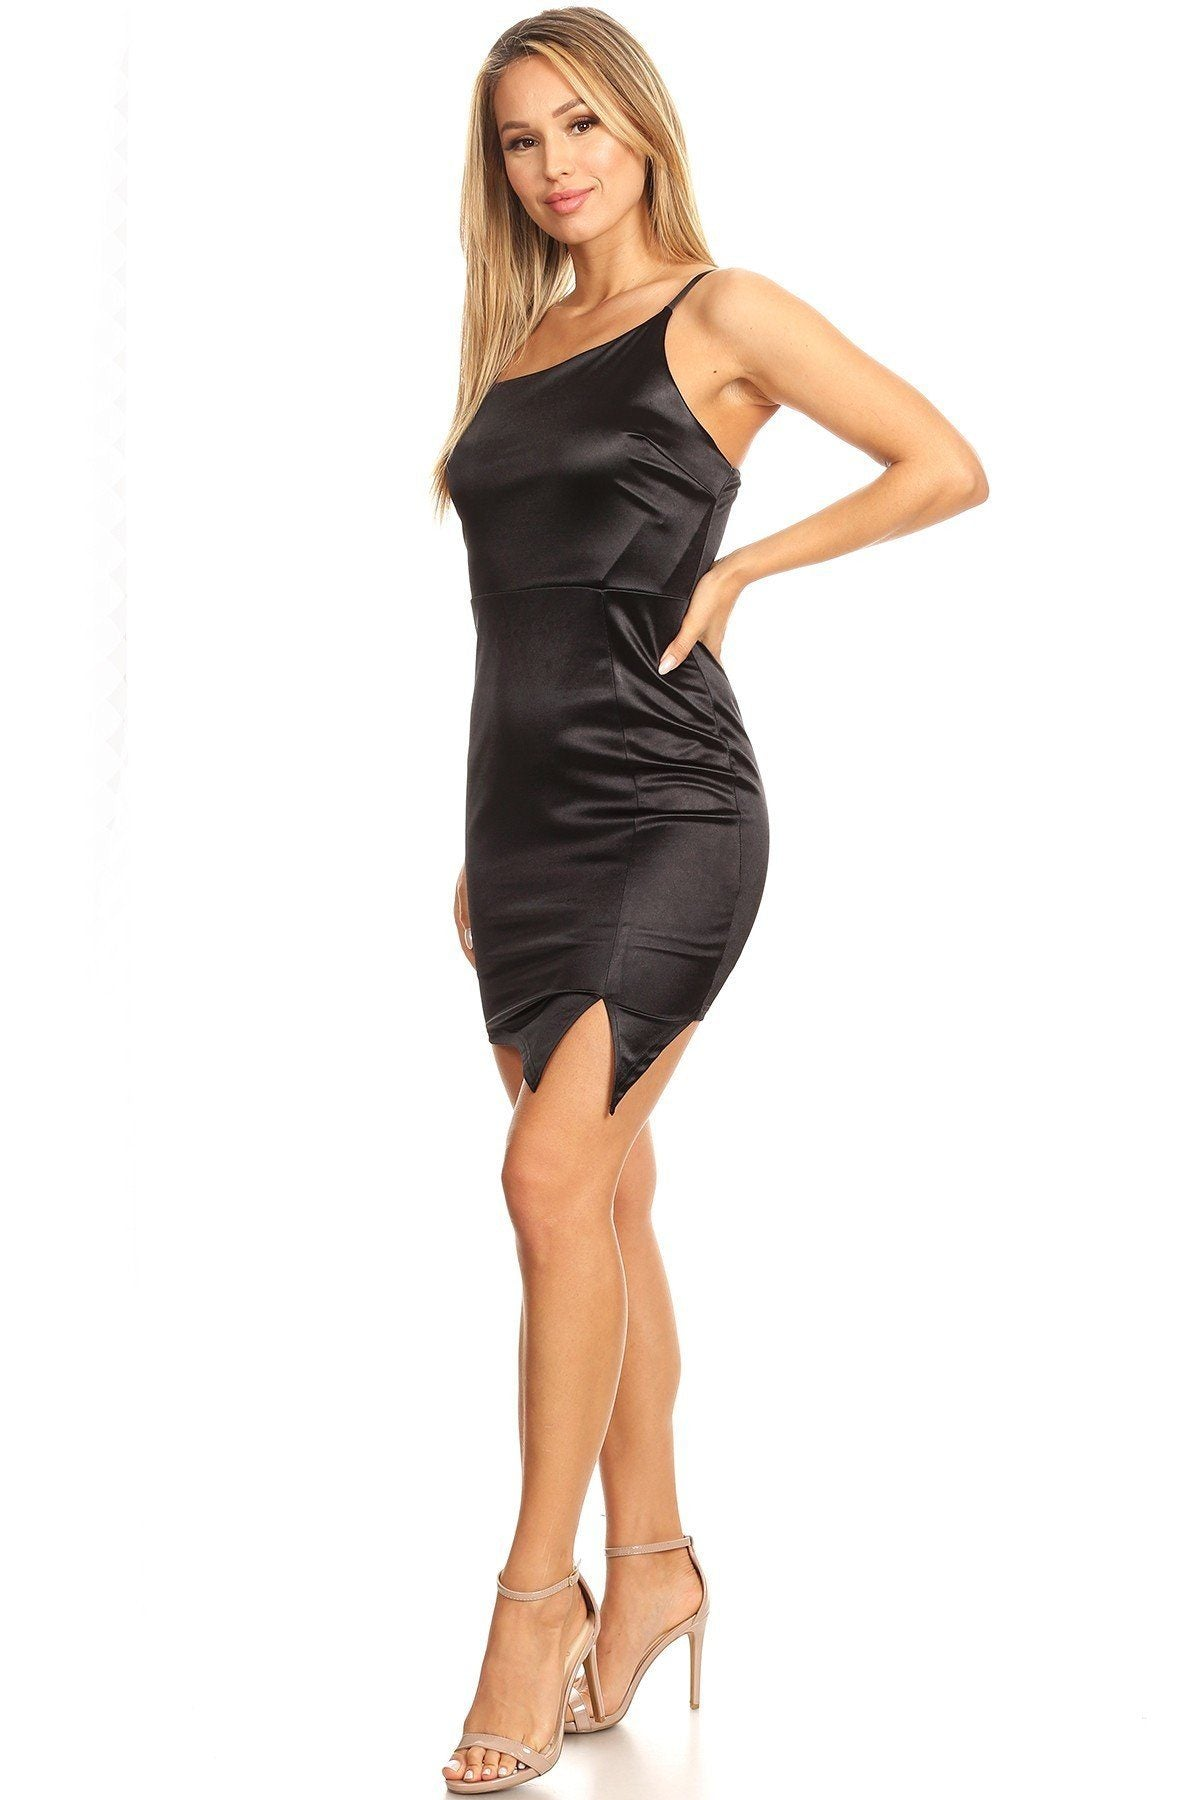 Solid Mini Dress With Bodycon Fit, Side Slit, And Spaghetti Straps-SamiraBoutique